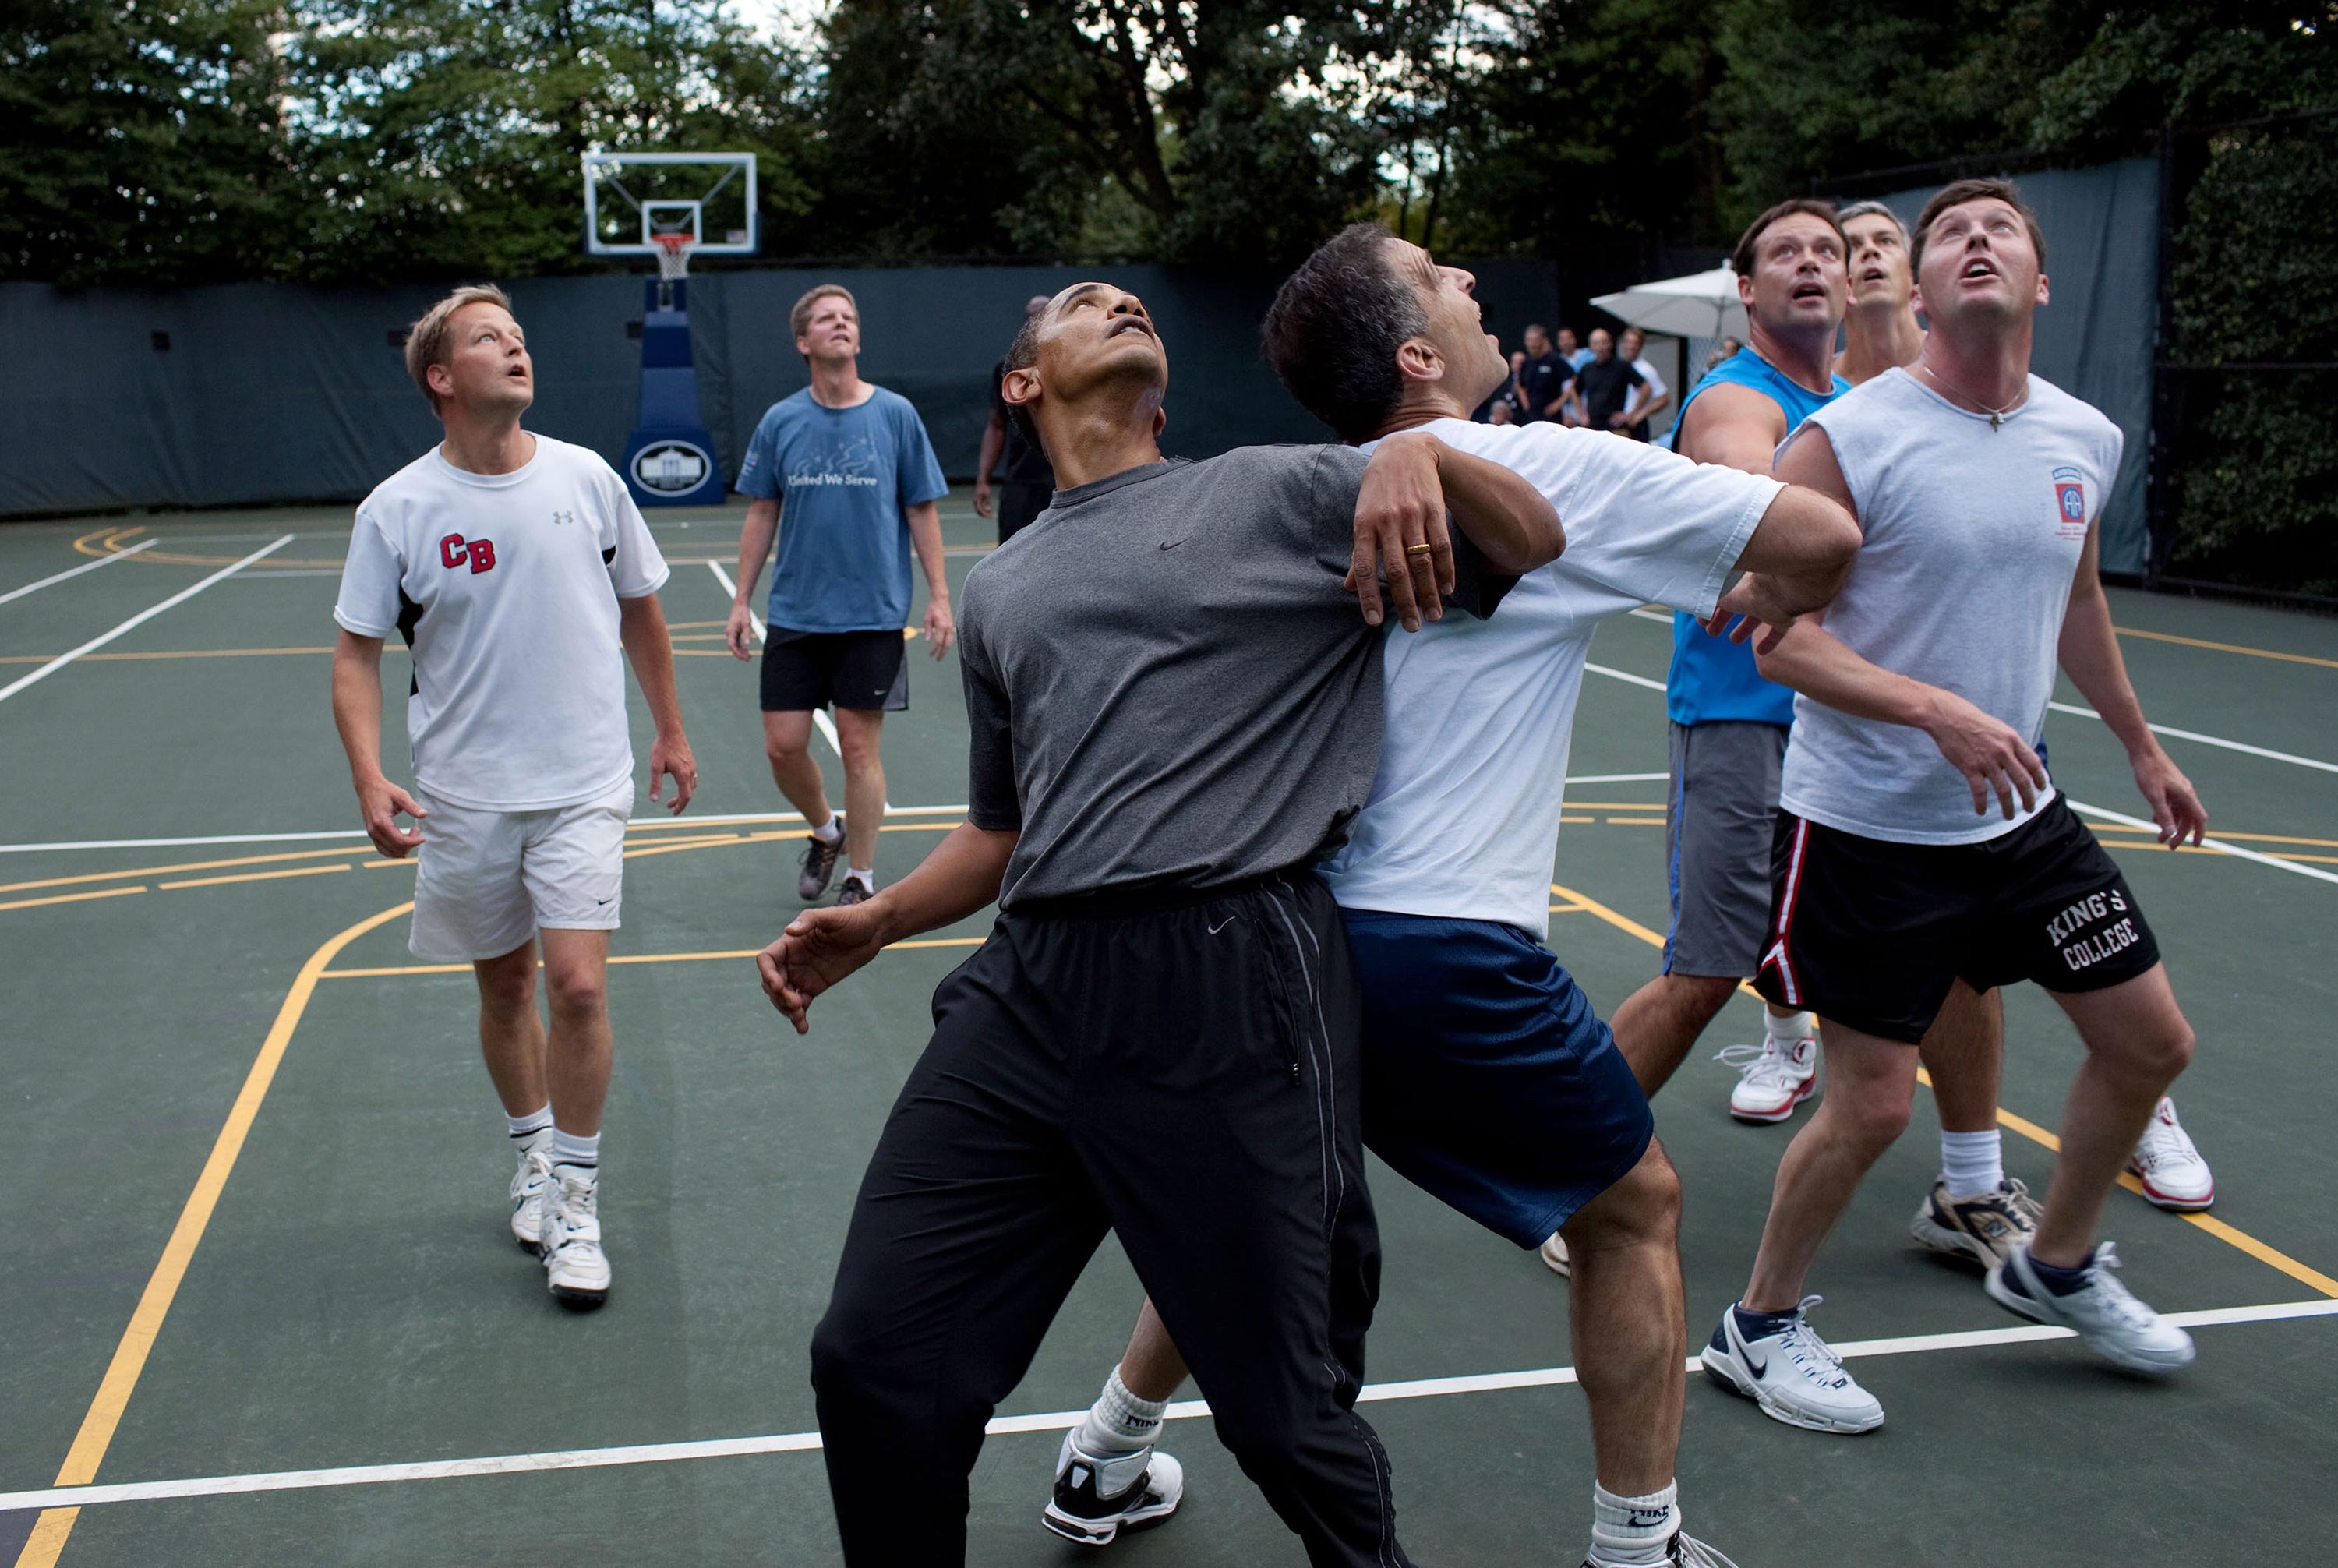 President Barack Obama, along with Cabinet Secretaries and Members of Congress, watch a shot during a basketball game on the White House court, Oct. 8, 2009.